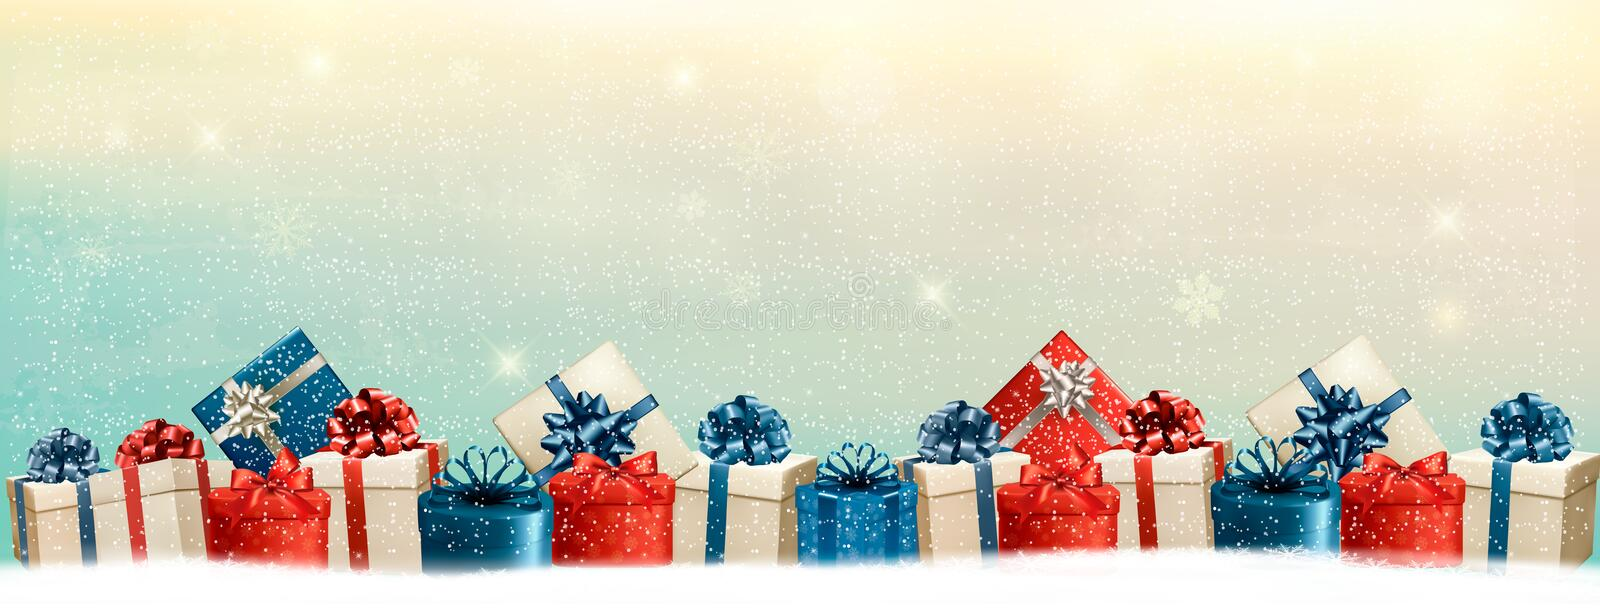 Holiday Christmas background with a border of gift boxes. vector illustration